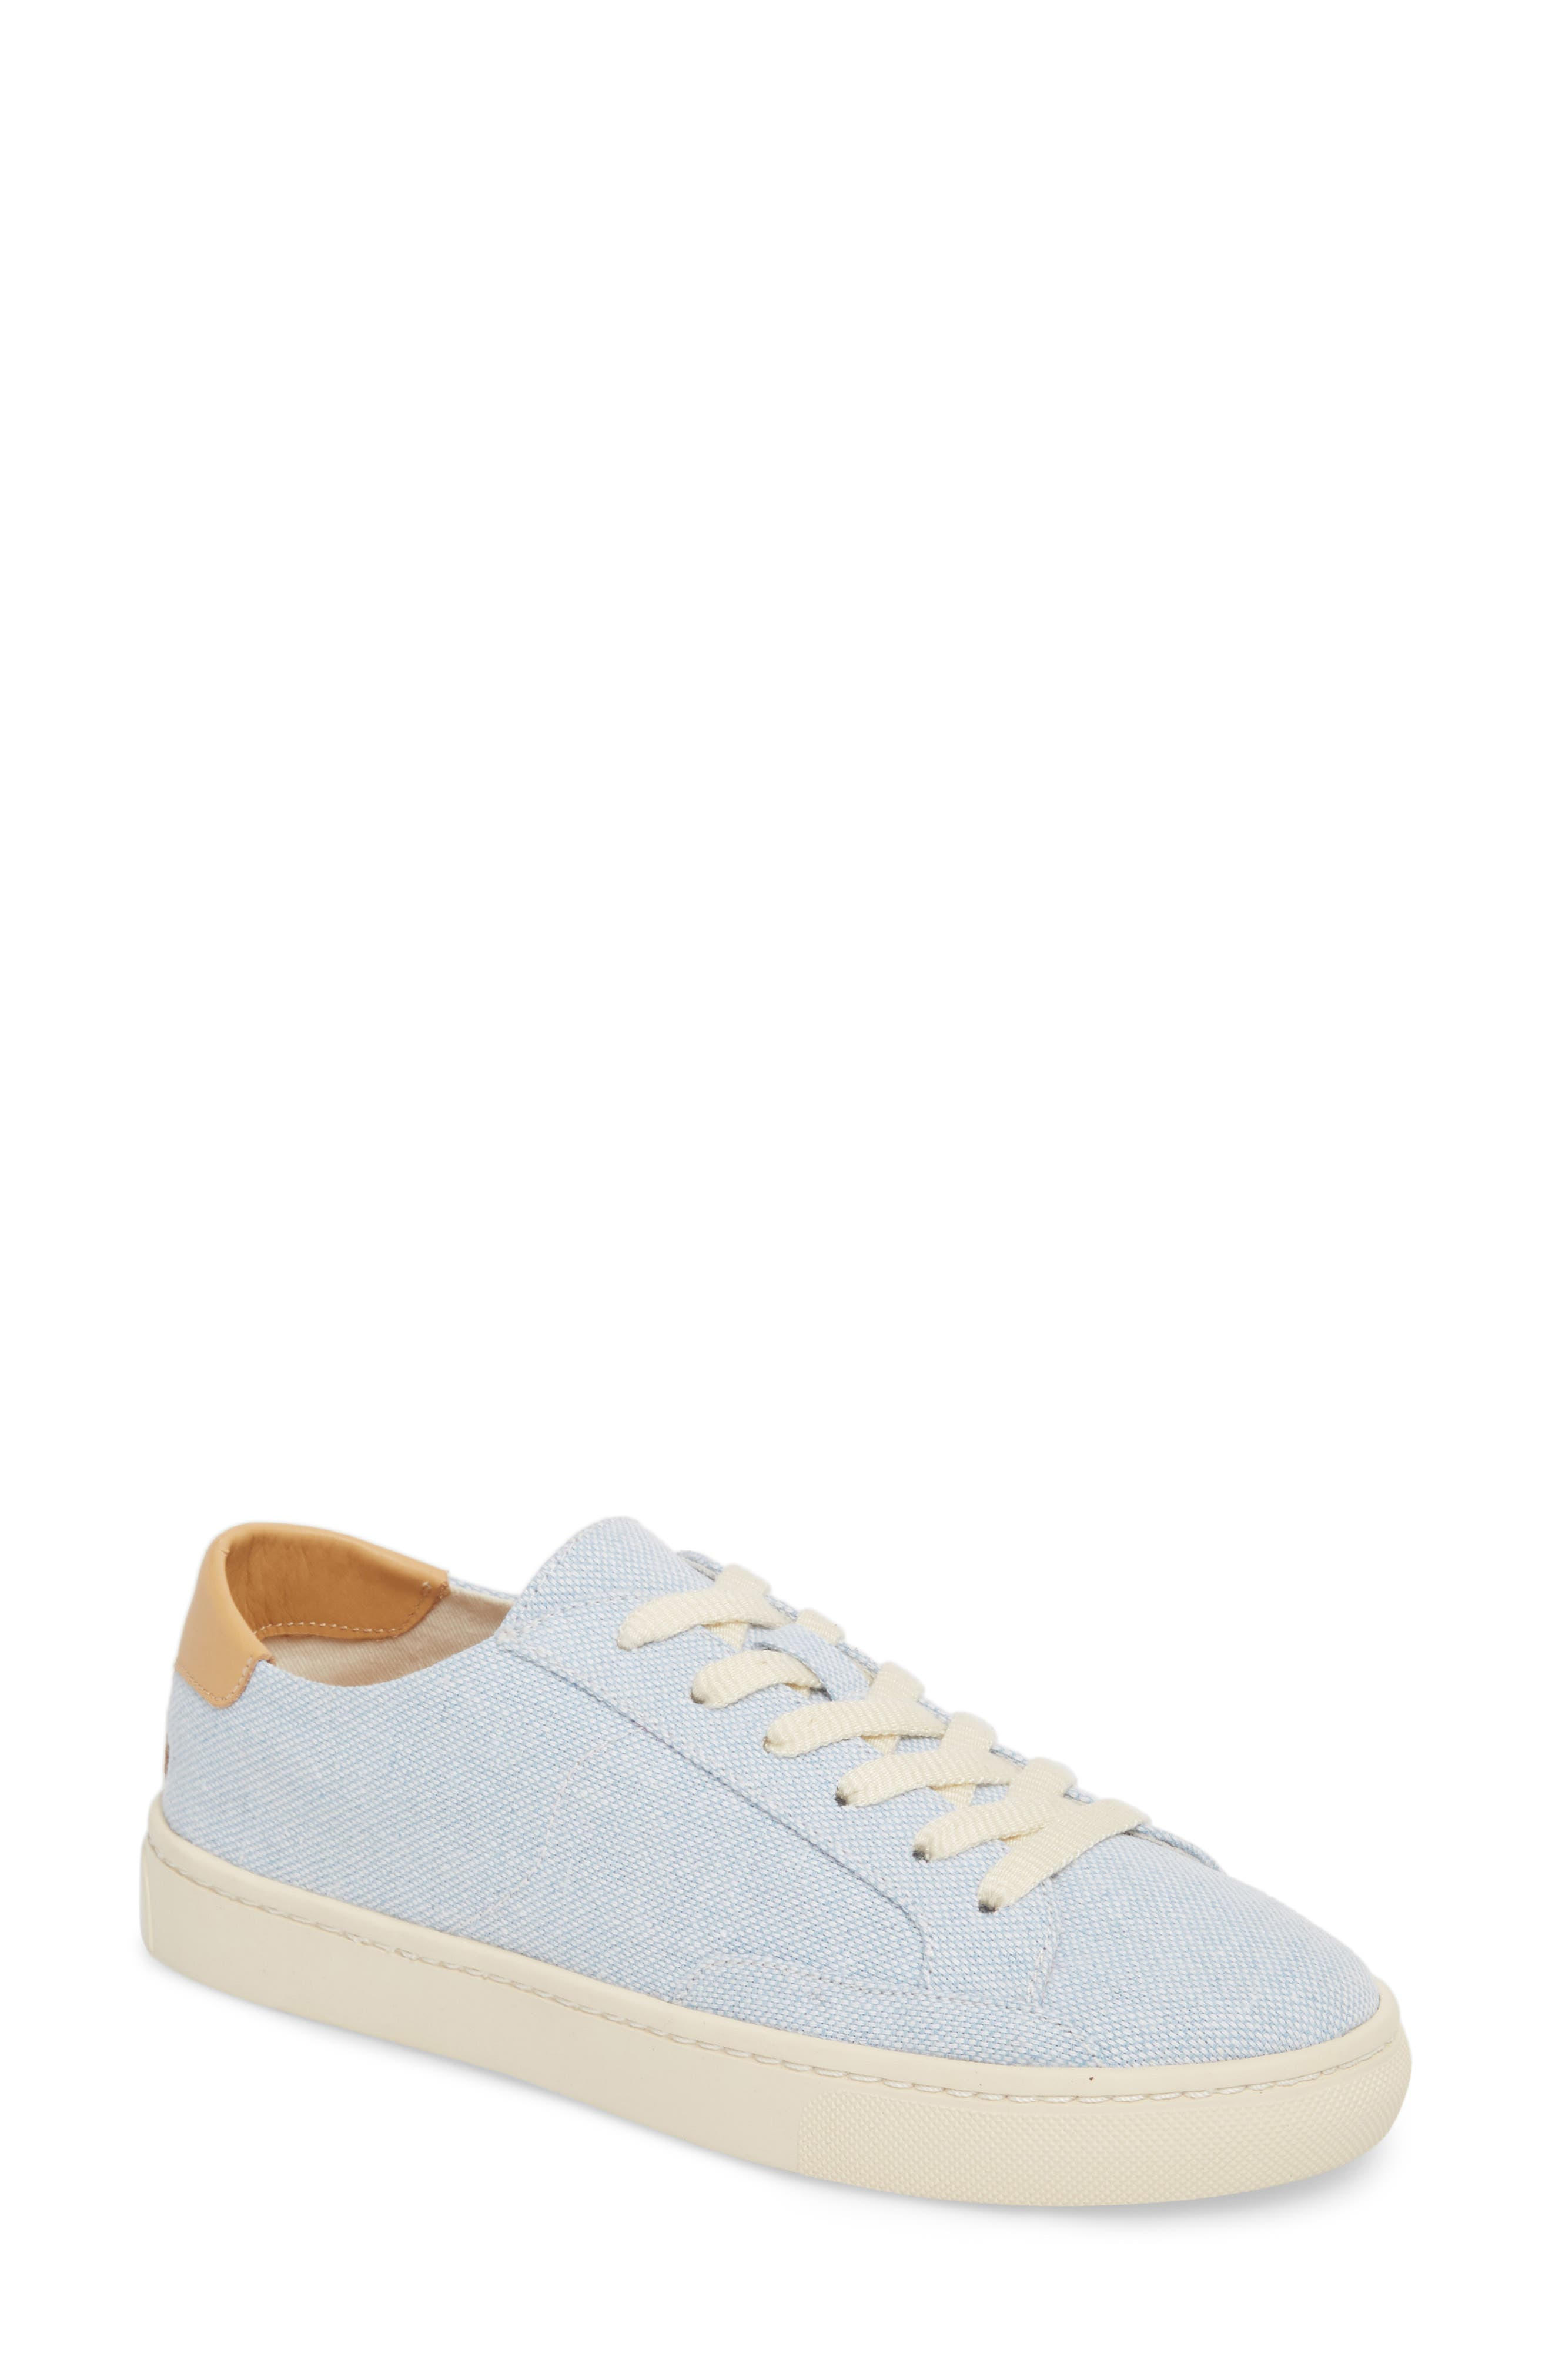 Ibiza Canvas Lace-Up Sneaker,                             Main thumbnail 1, color,                             SKY BLUE